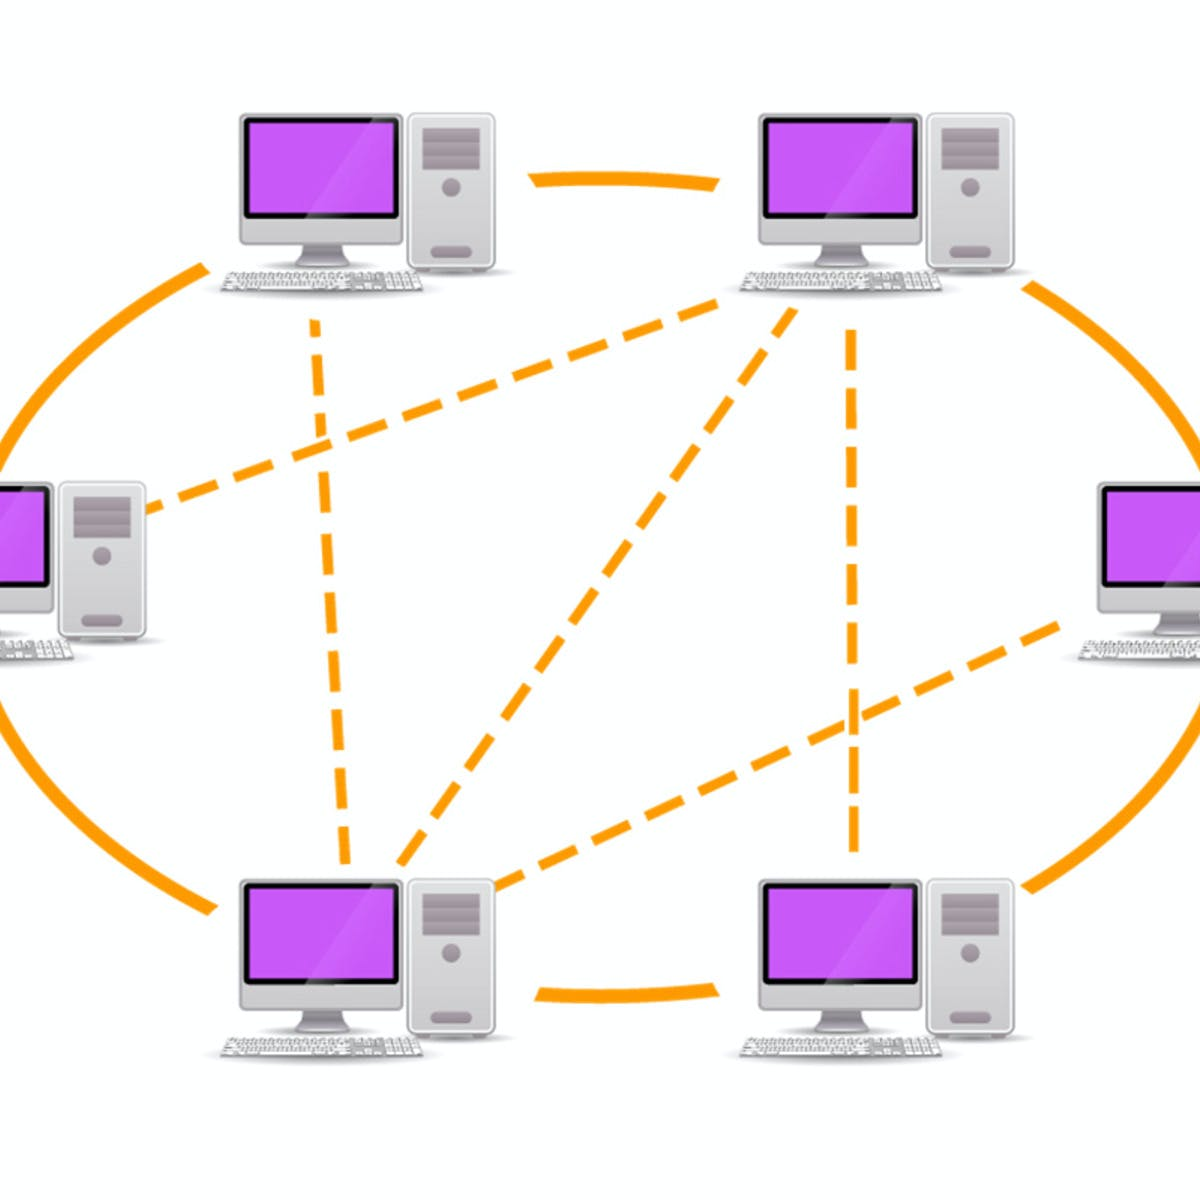 Peer-to-Peer Protocols and Local Area Networks